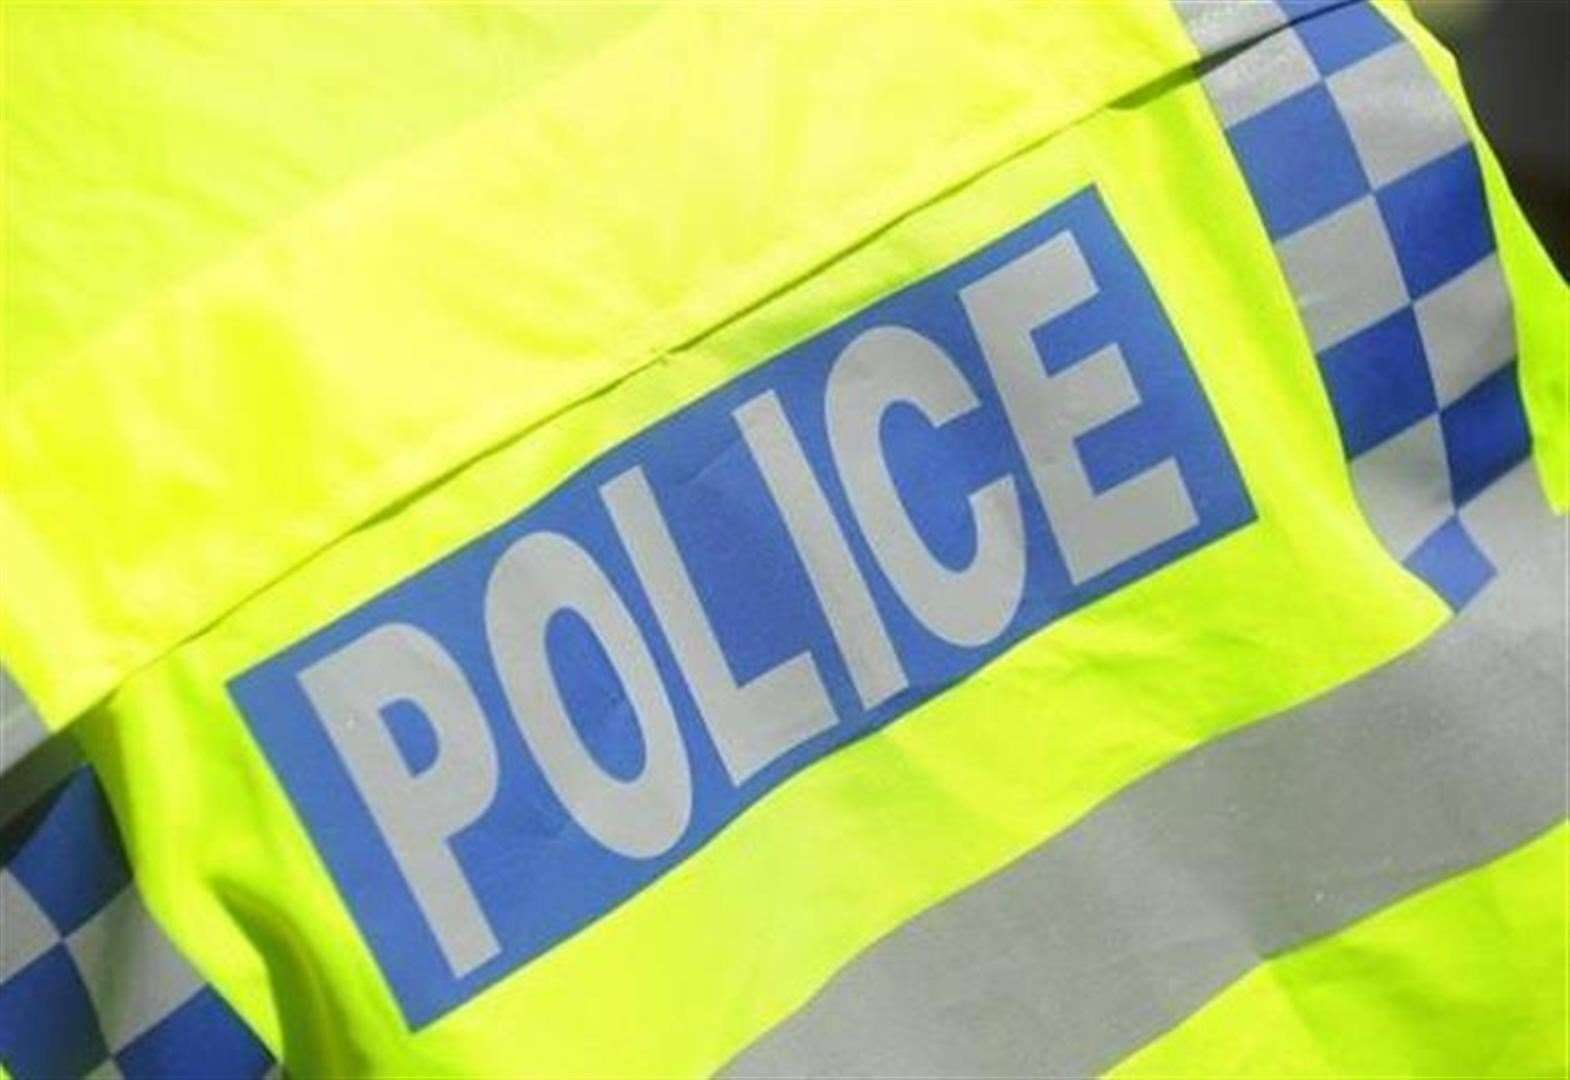 Police investigate after house burgled in Grantham